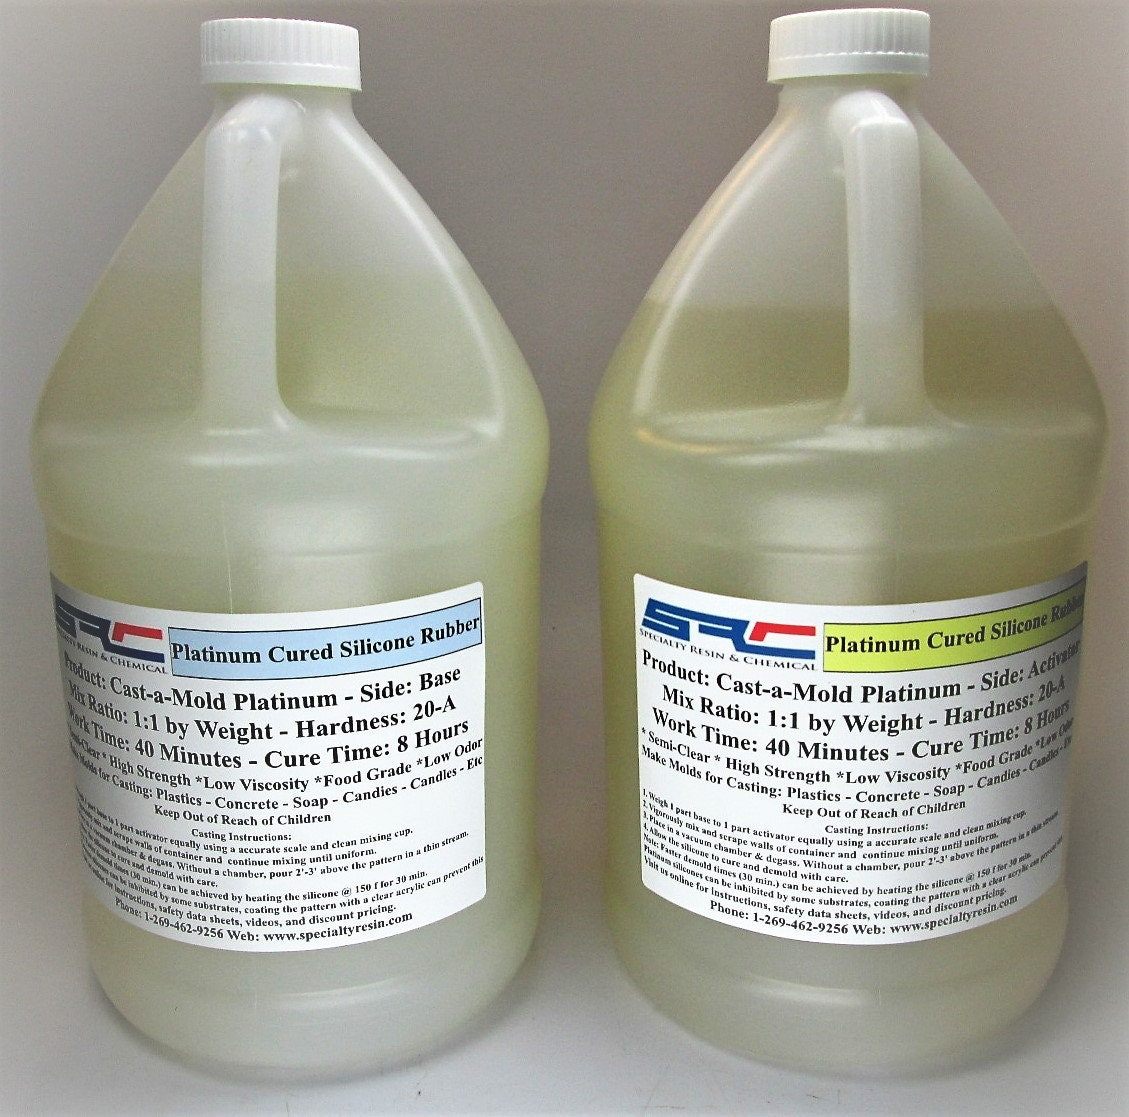 RTV Silicone Rubber For Mold Making: 1 to 1 Mix Ratio Food Grade 2 Gallons